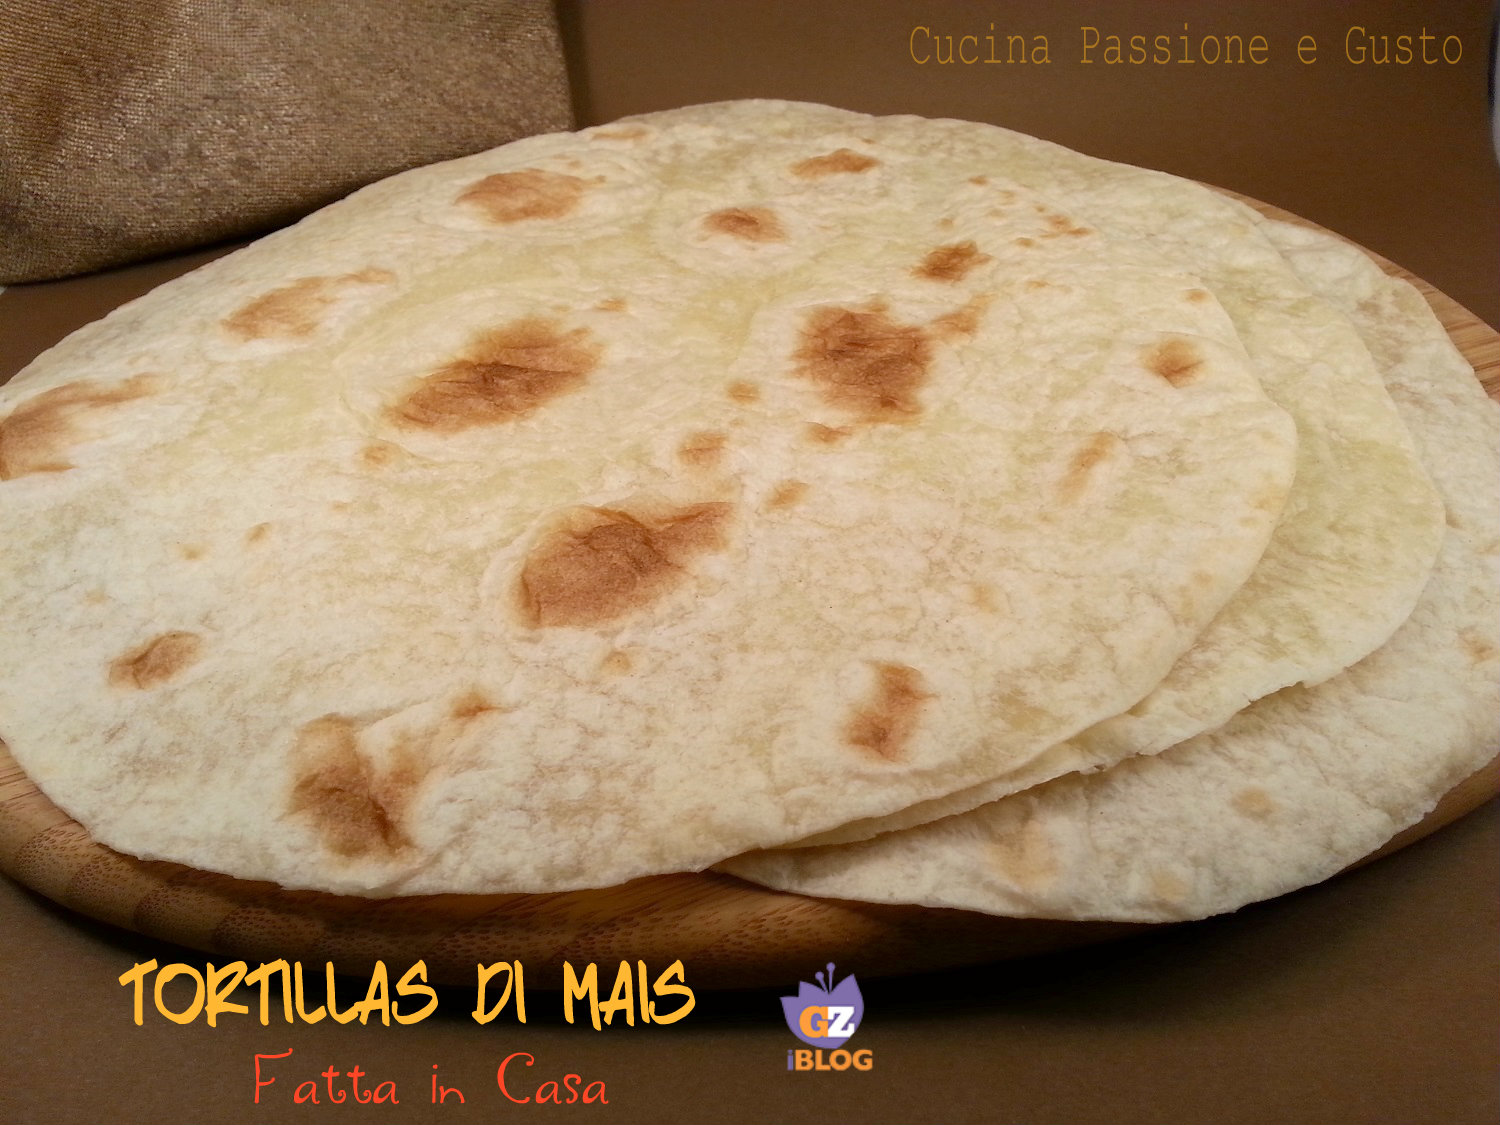 TORTILLAS DI MAIS FATTE IN CASA